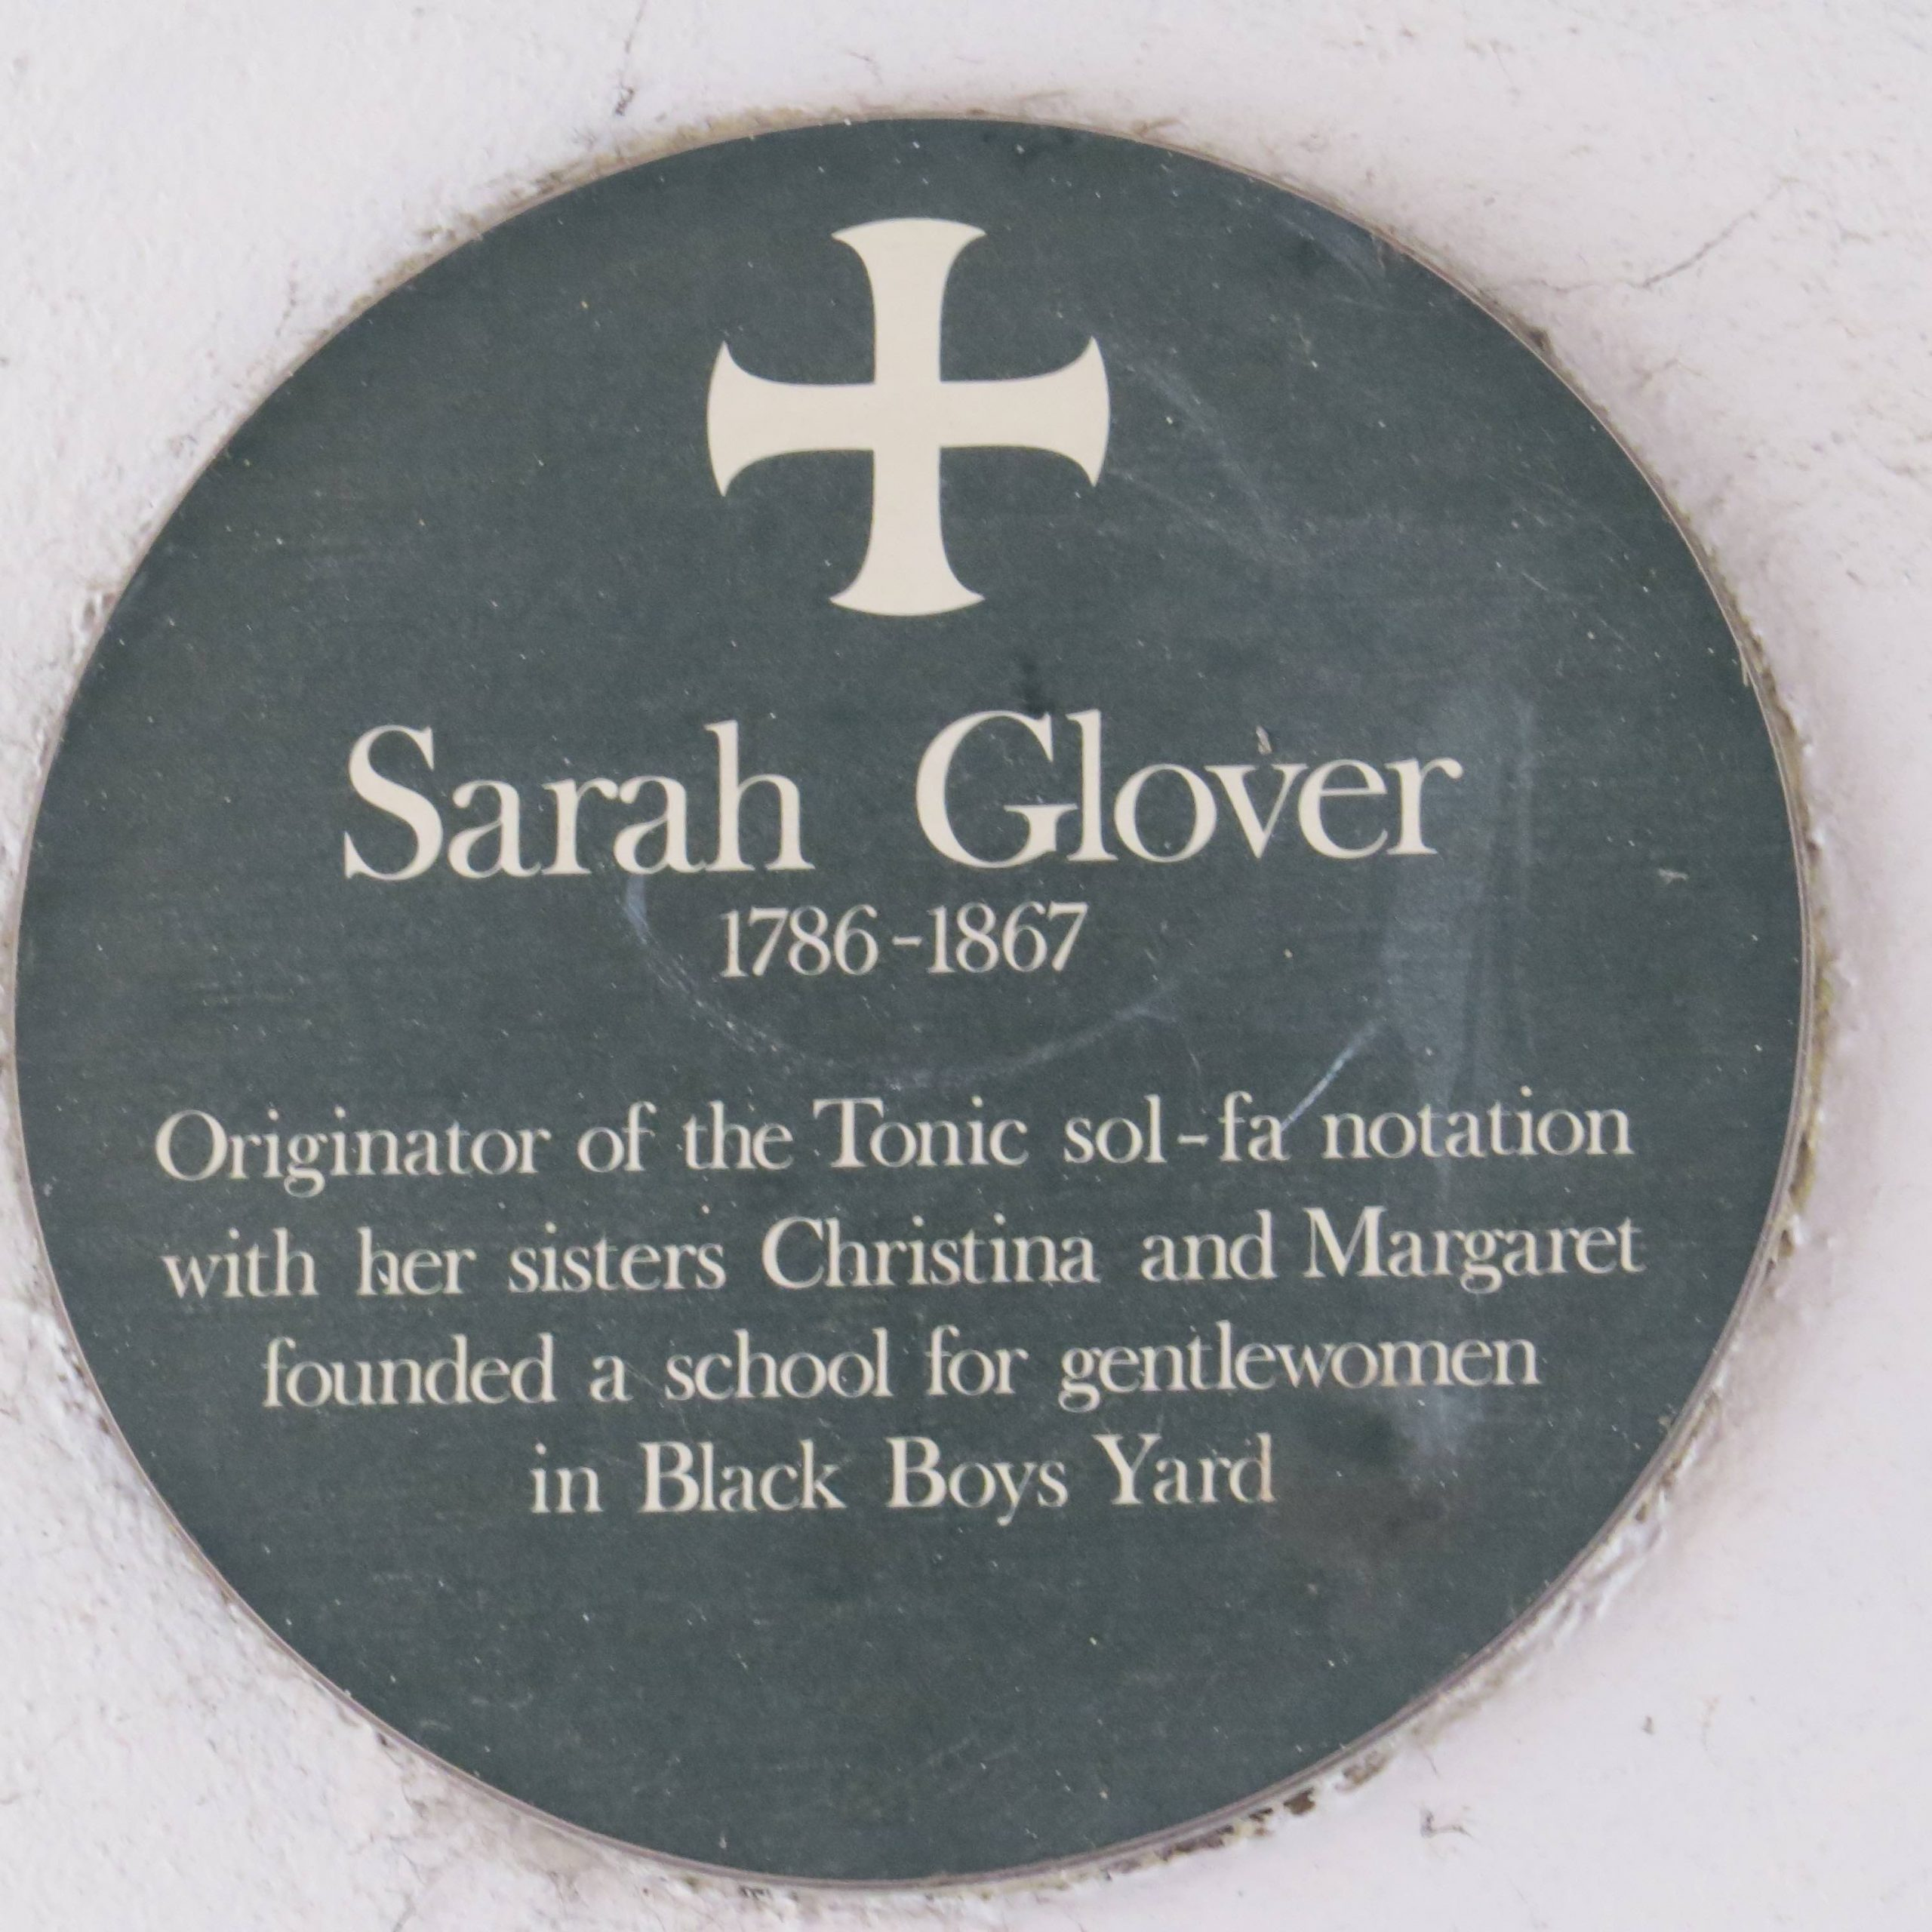 Norwich Sarah Glover Tonic sol-far small